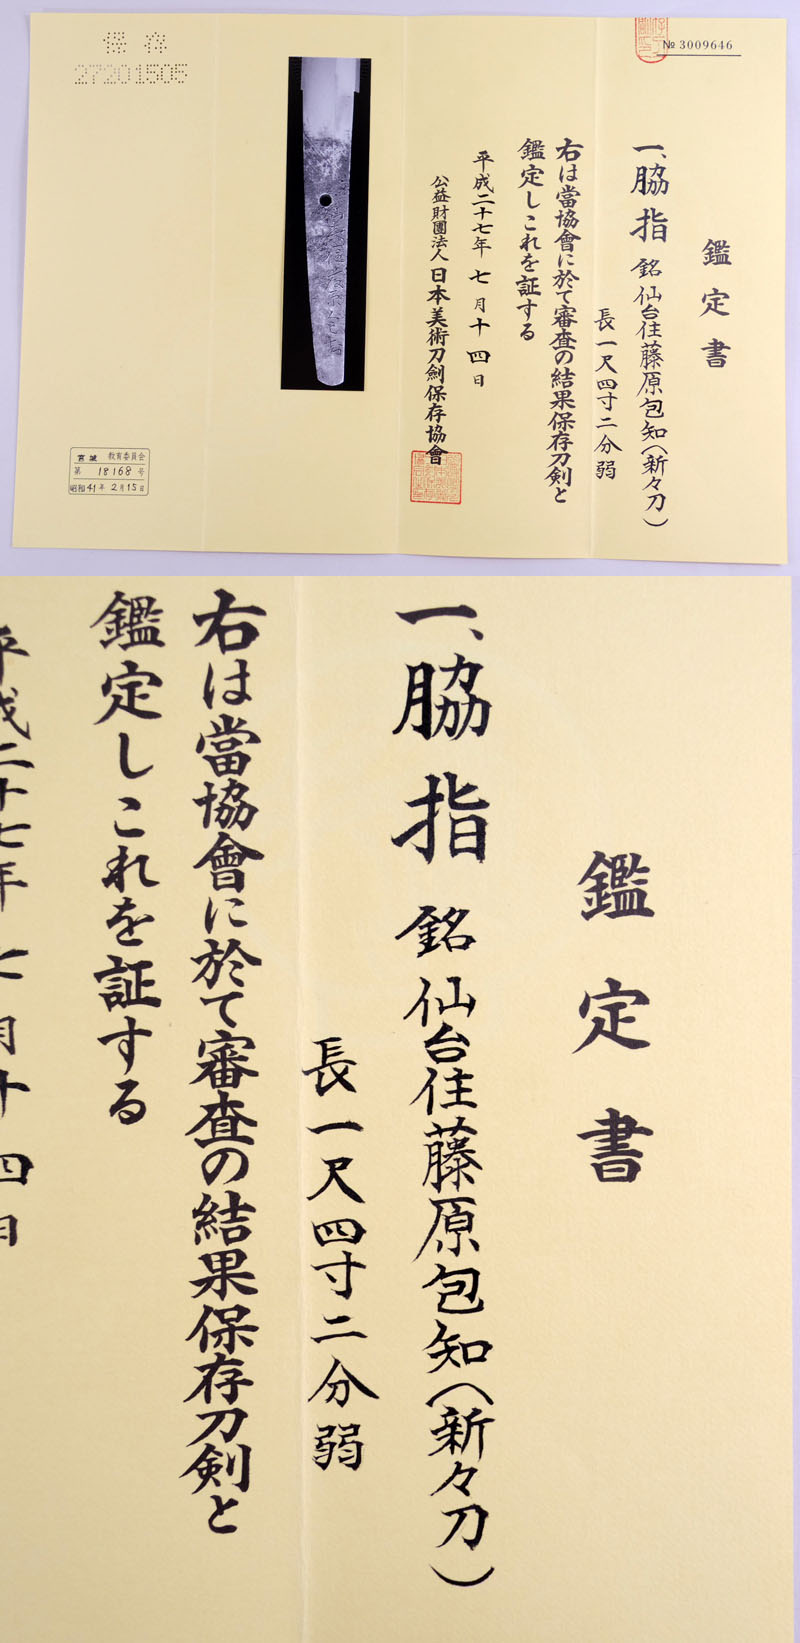 仙台住藤原包知 Picture of Certificate